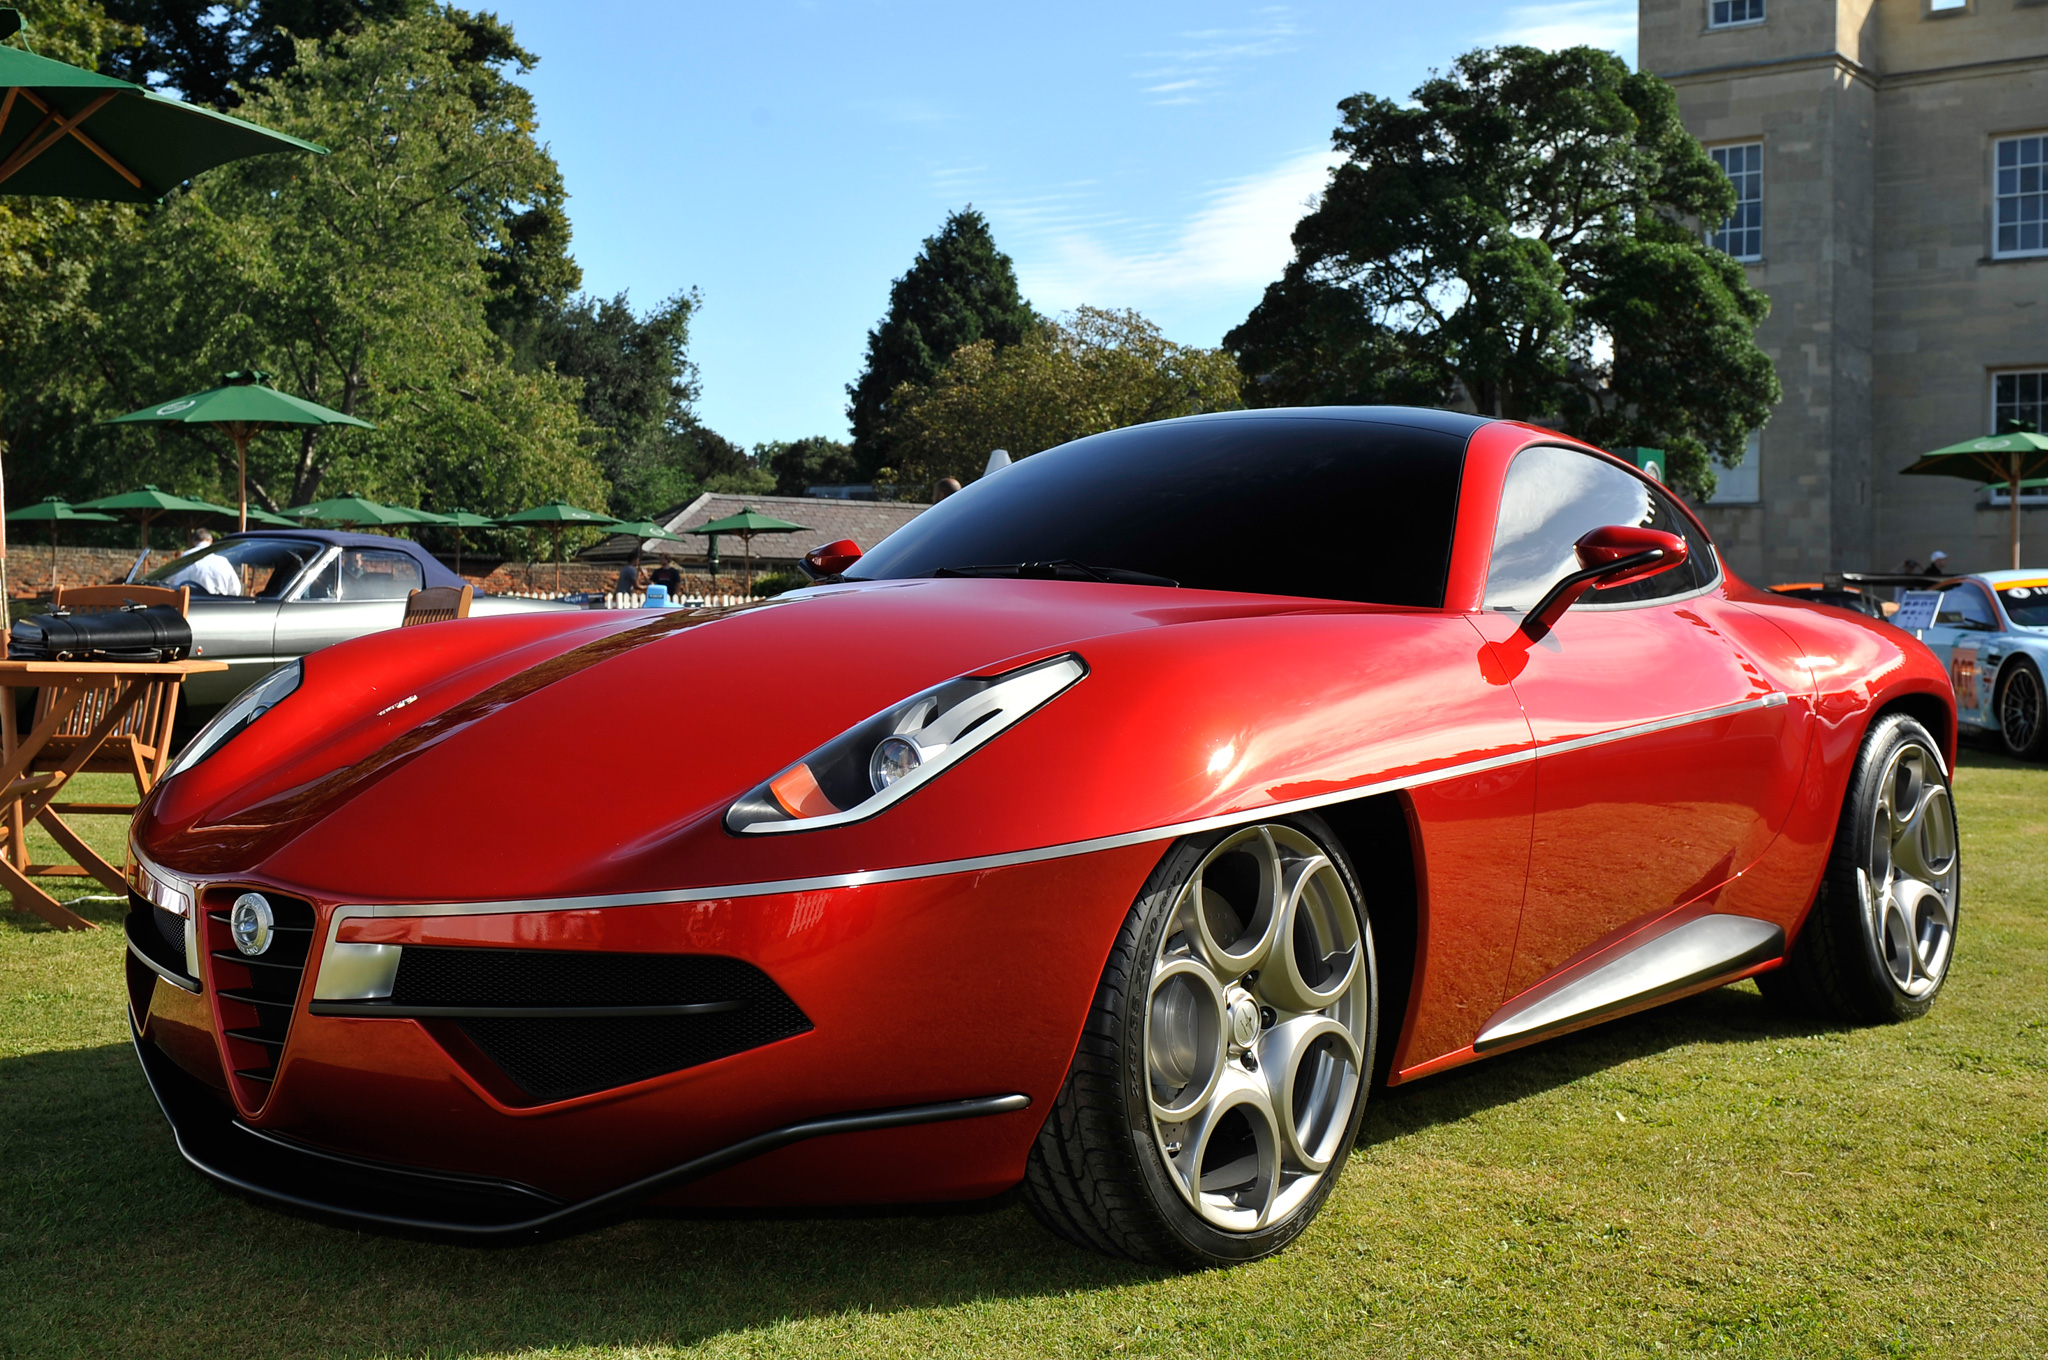 Alfa Romeo Disco Volante 2013 - now Coupe #4